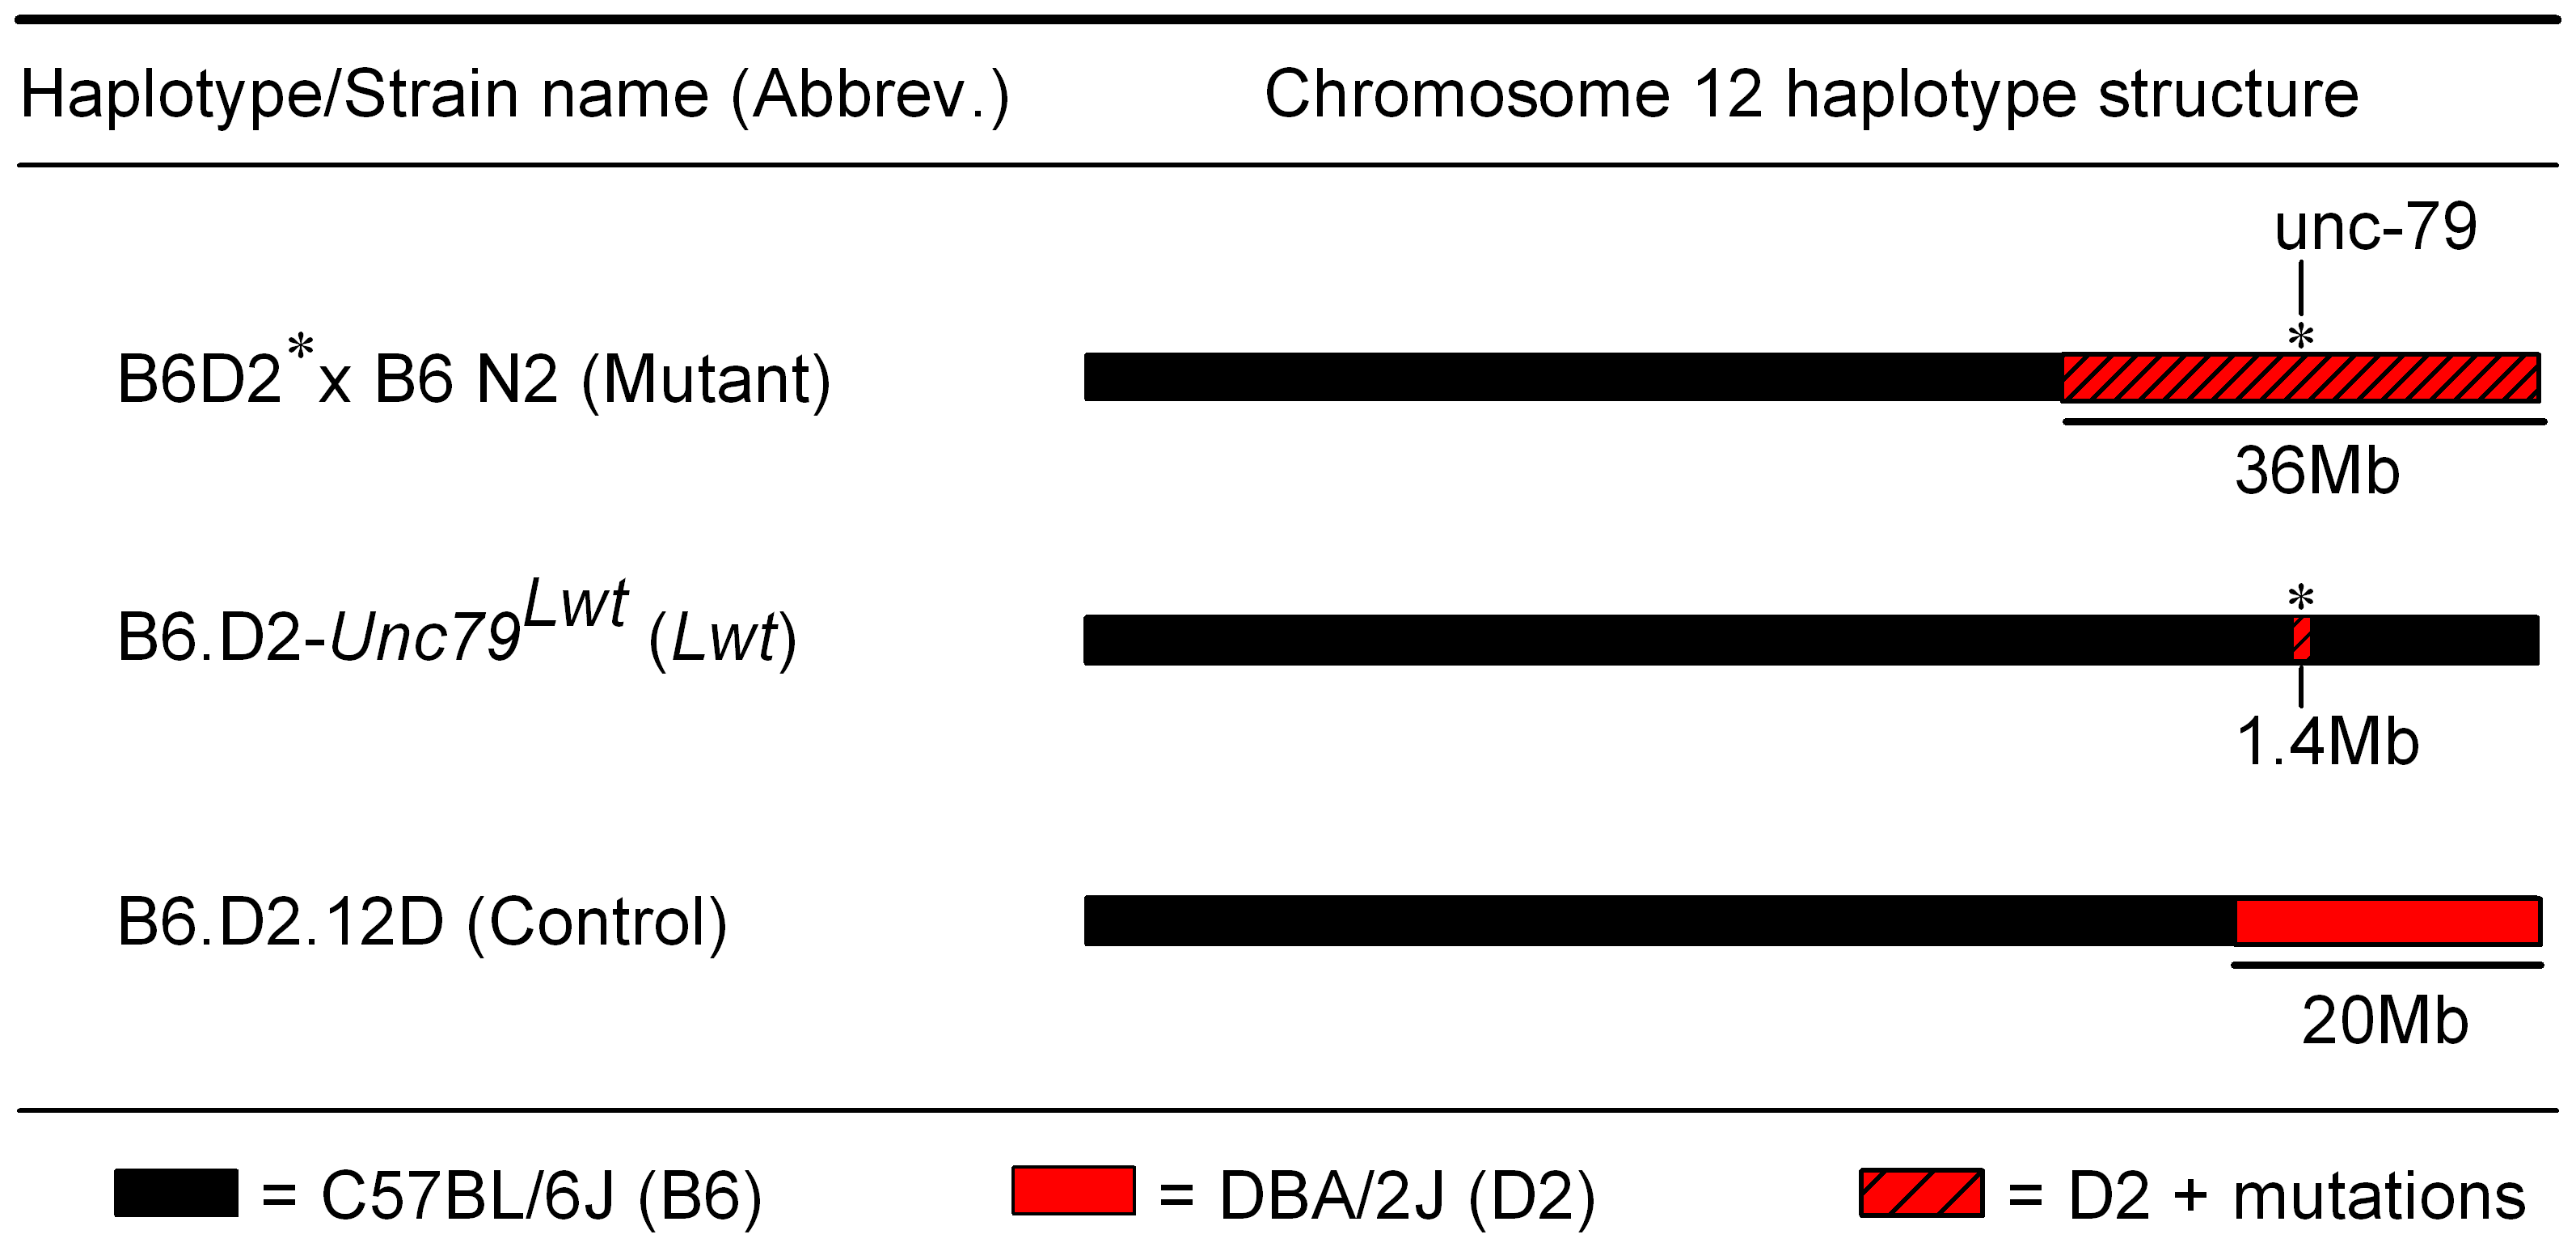 Chromosome 12 haplotype structure of animals used for behavioral testing.